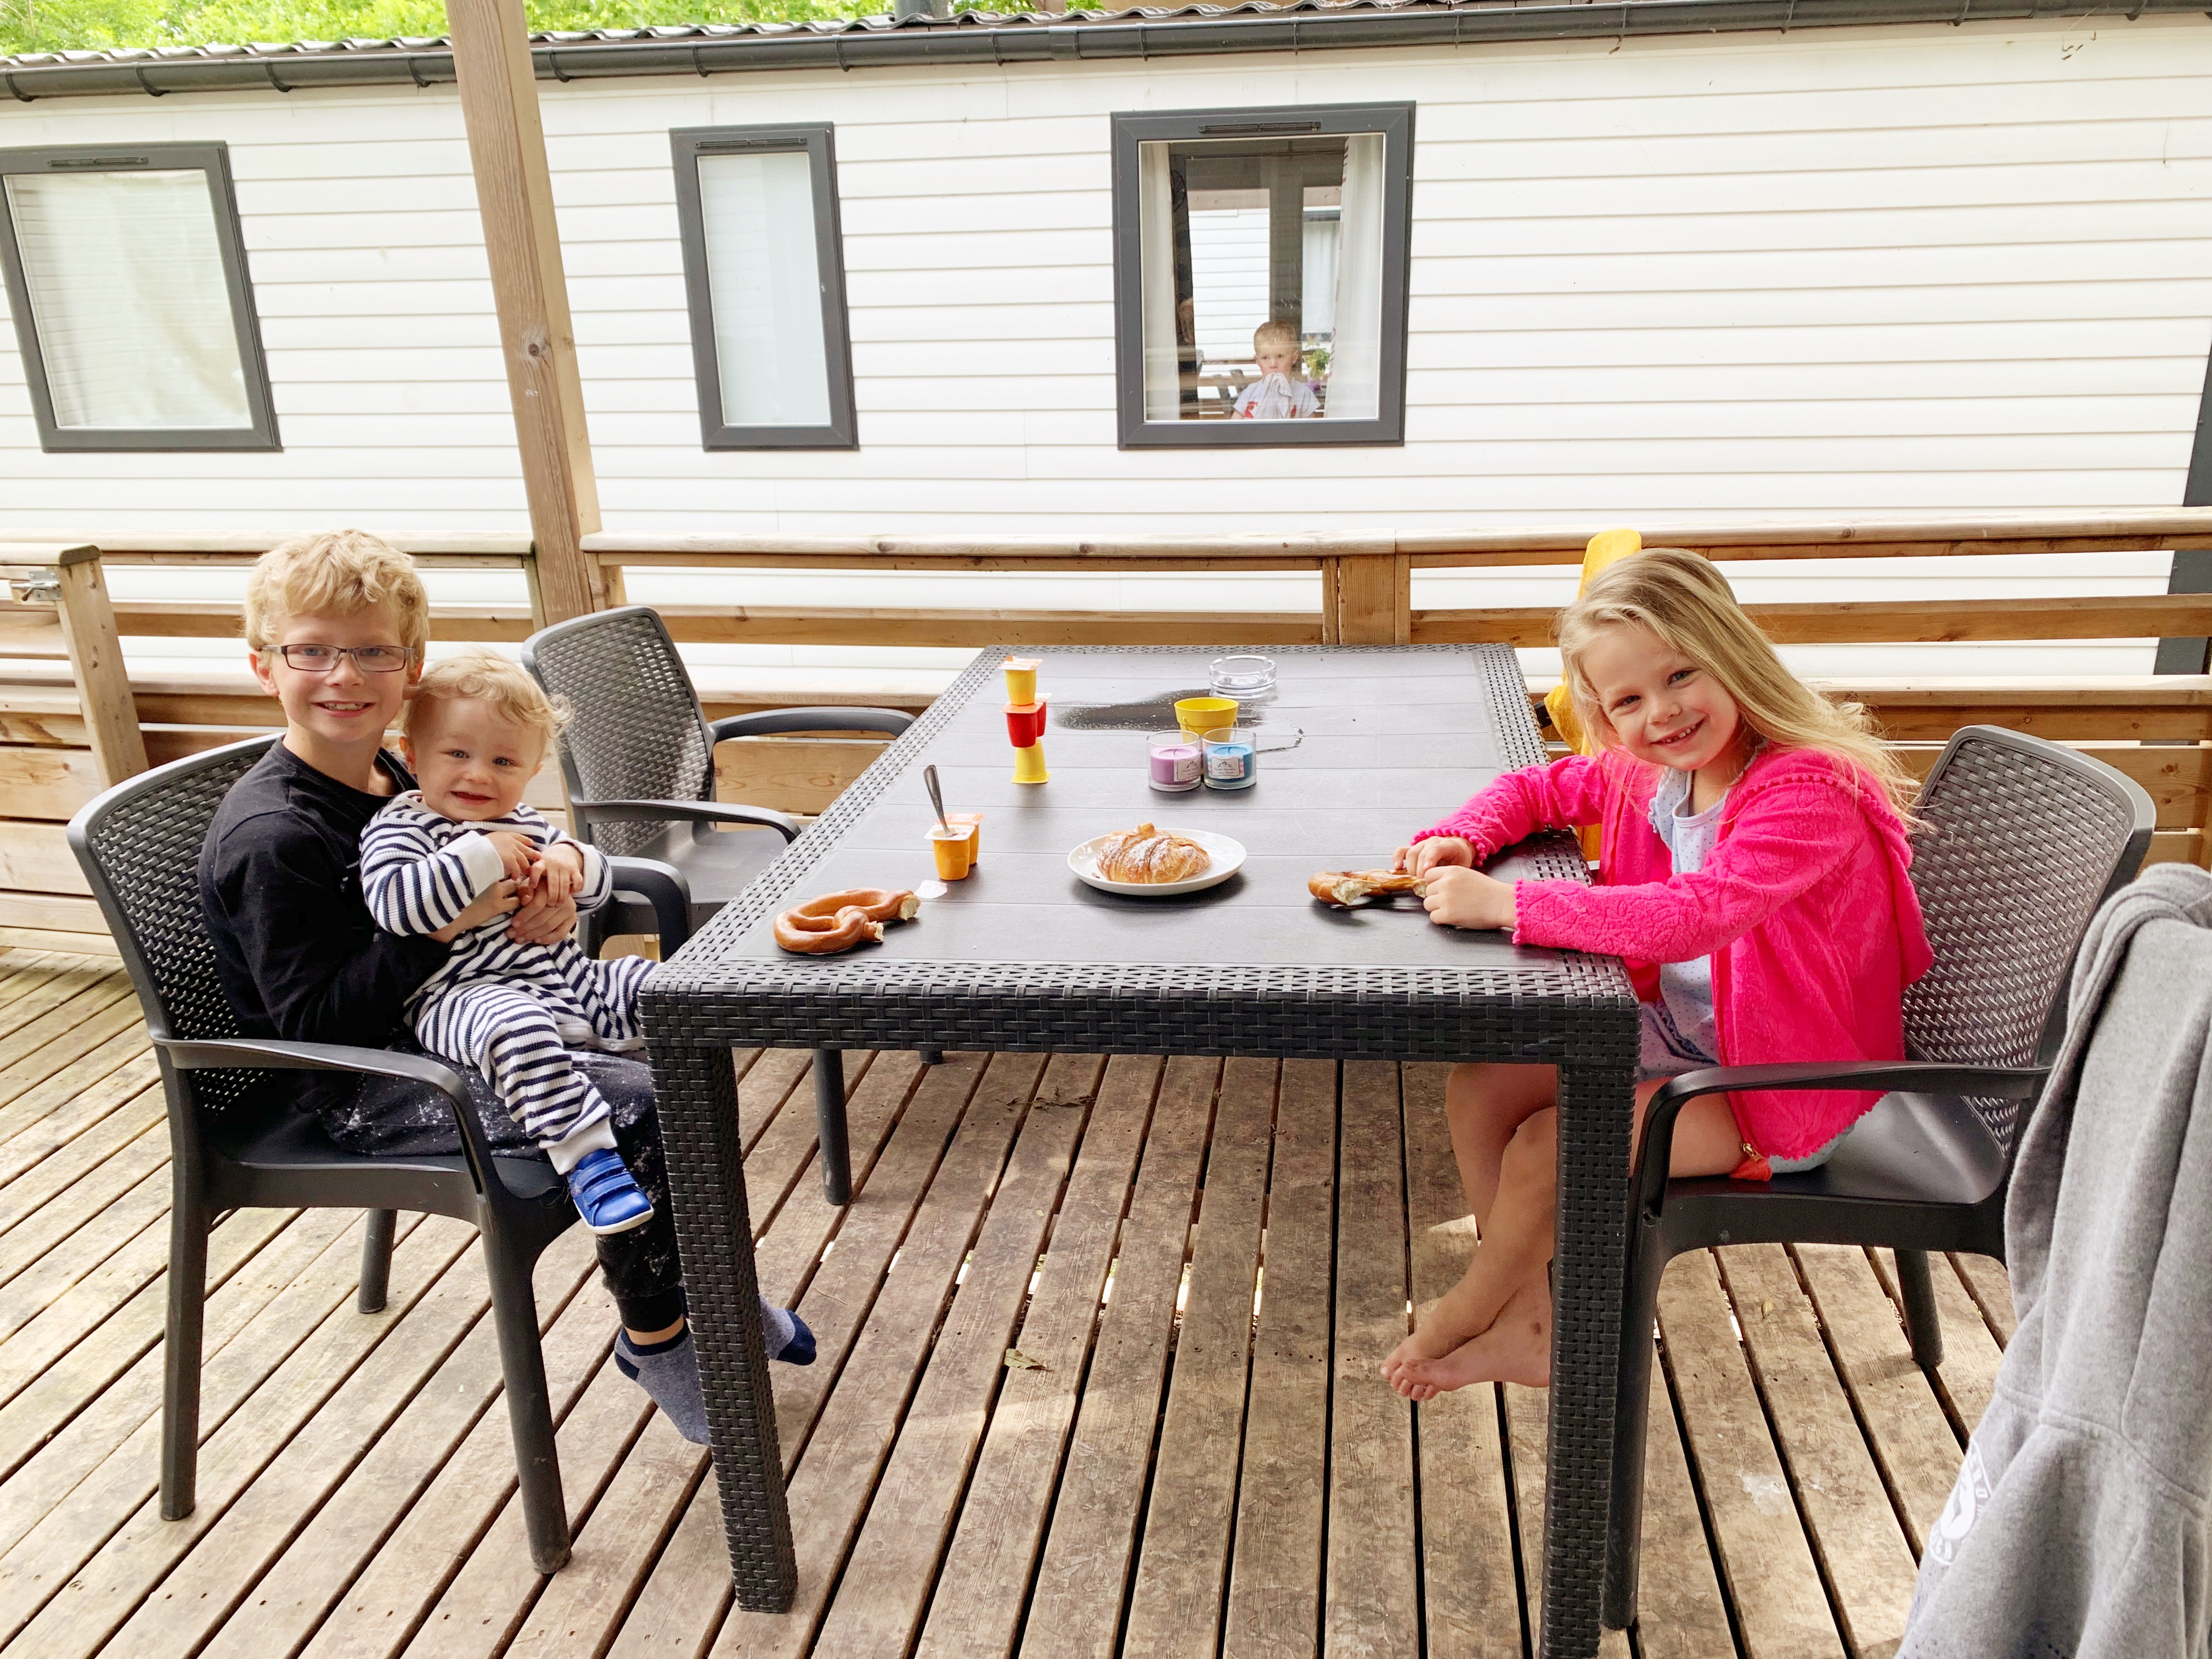 A table and chairs on a deck outside a Eurocamp Avant lodge. The table is set with some kids snacks, and a boy sits on the left with his younger brother on his knee. A girl sits on the other side of the table. All 3 children are smiling at the camera.